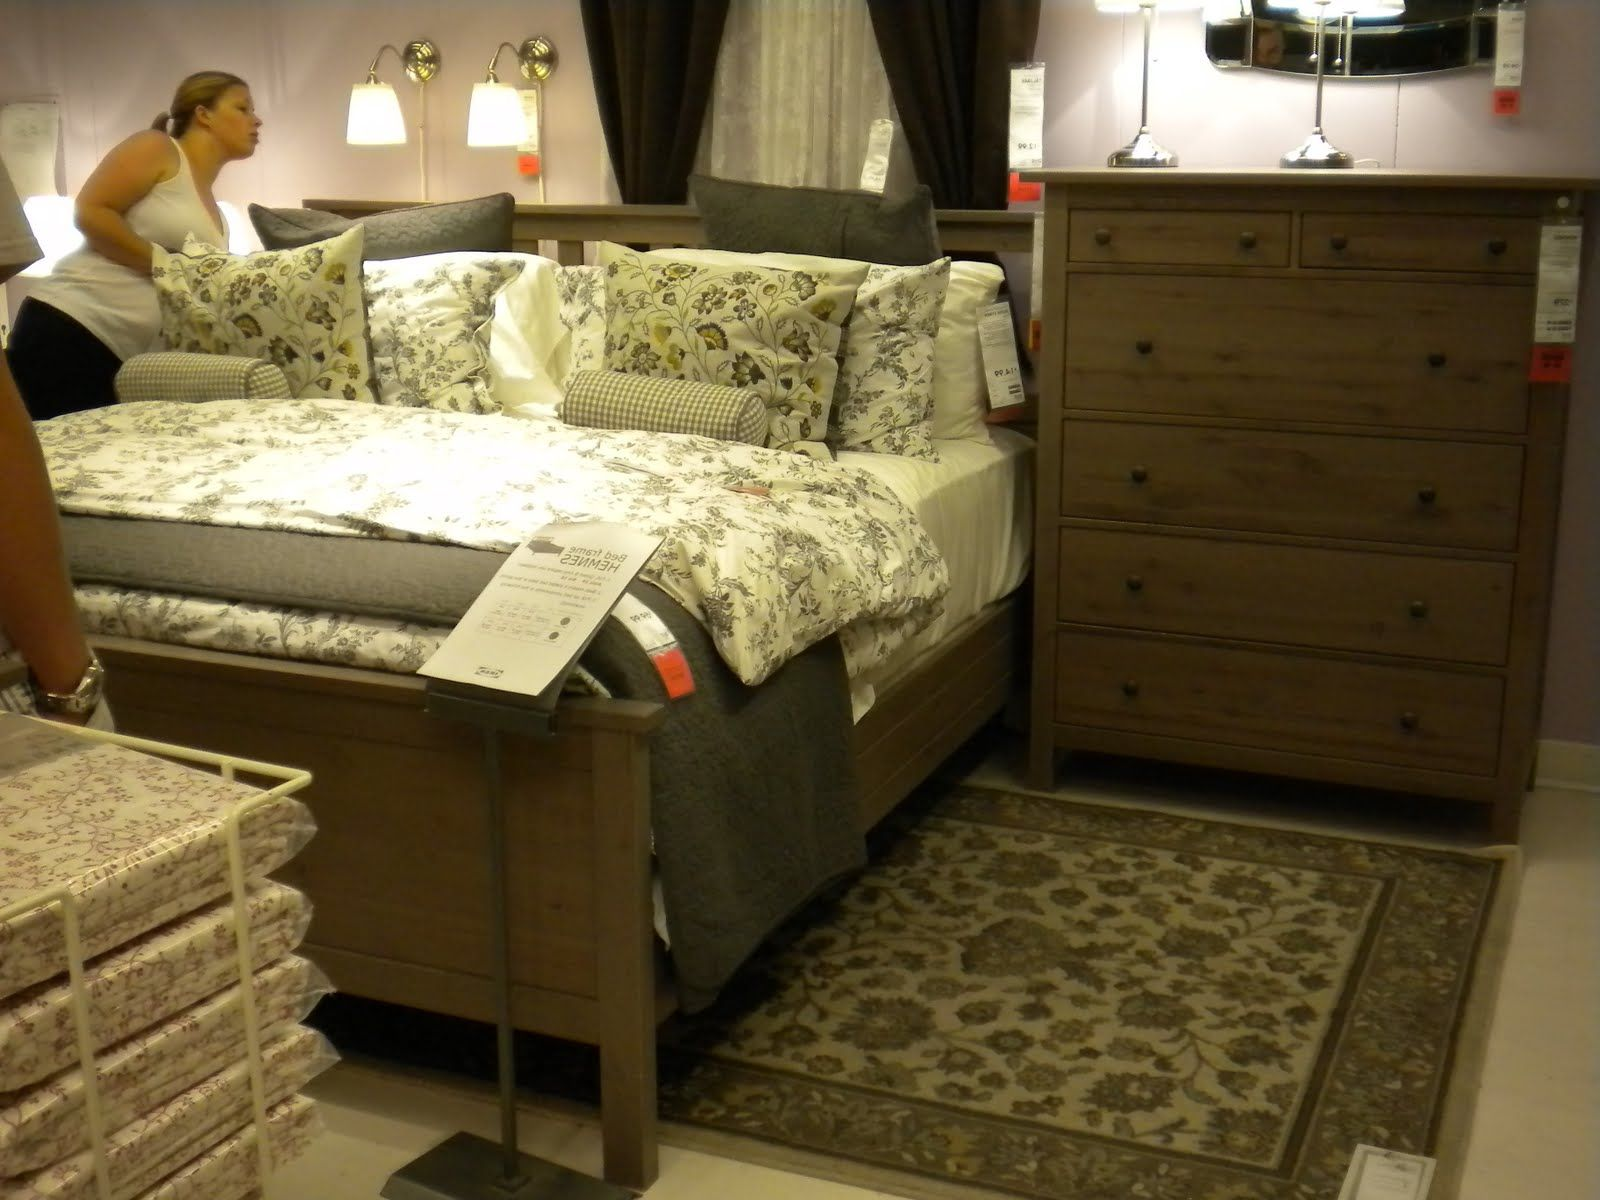 benches end ideas bench green storage bedroom design for inspiration bed refined ikea stella furniture of helen